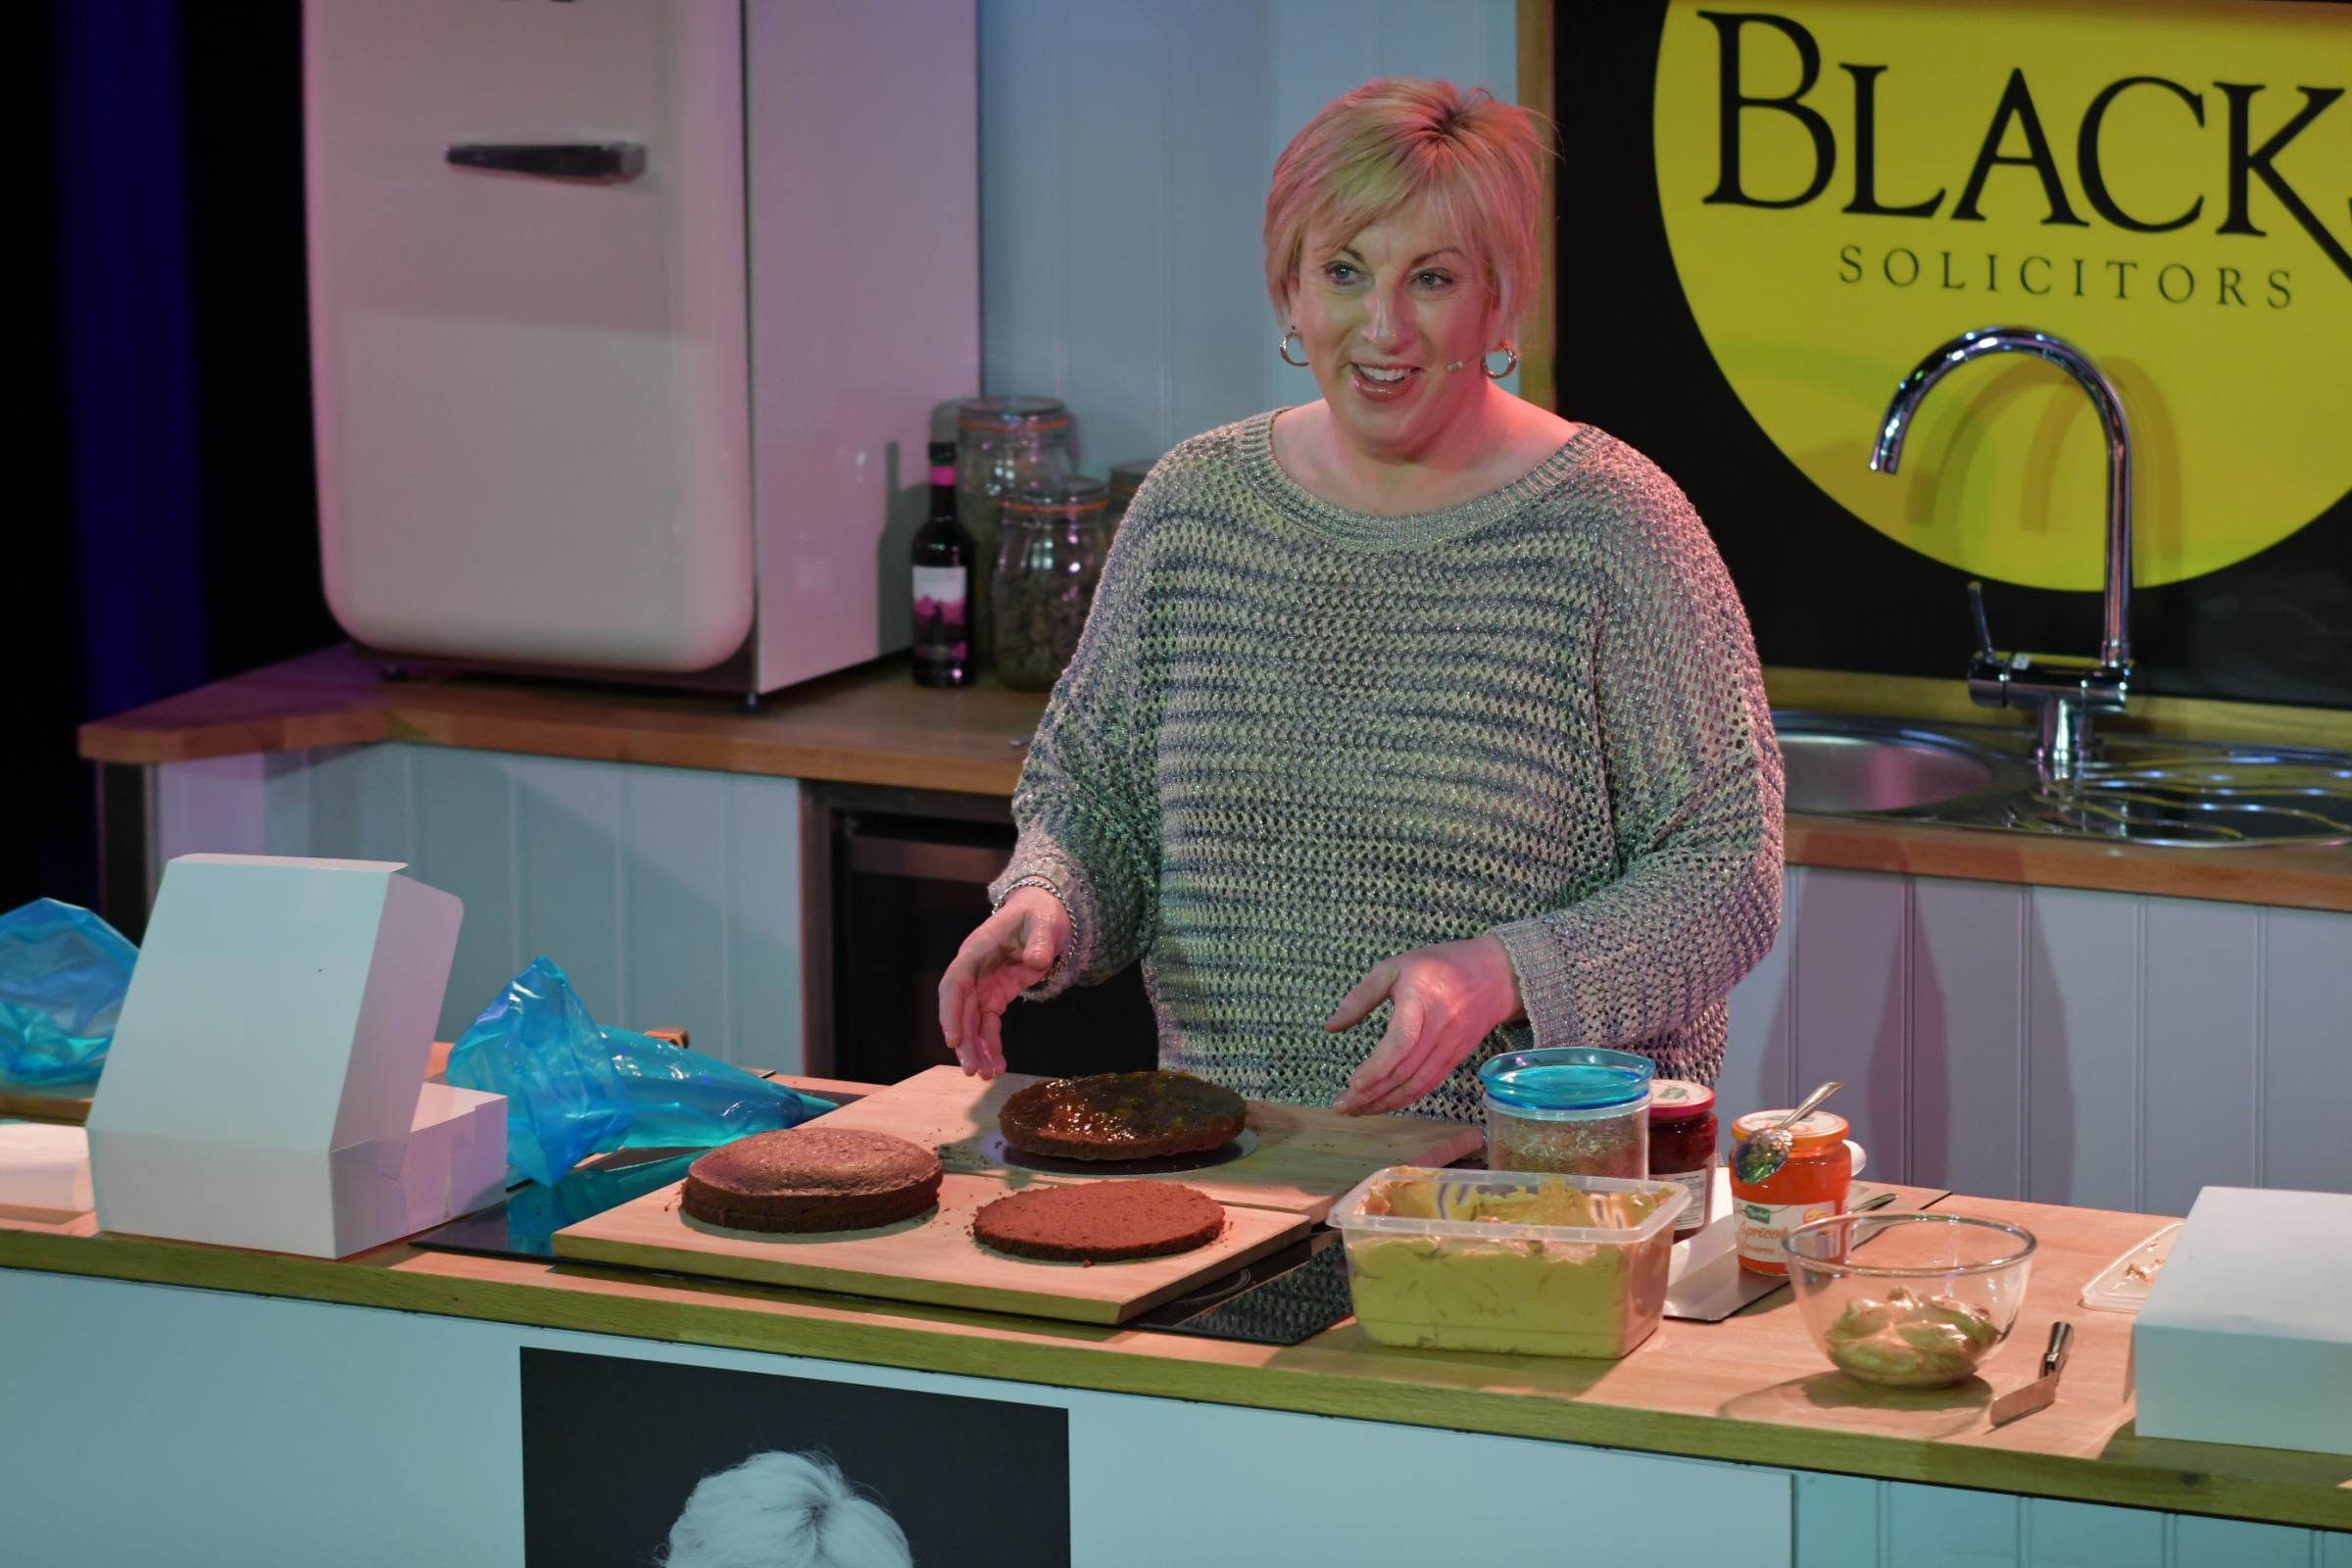 Former Great British Bake Off contestant launches book